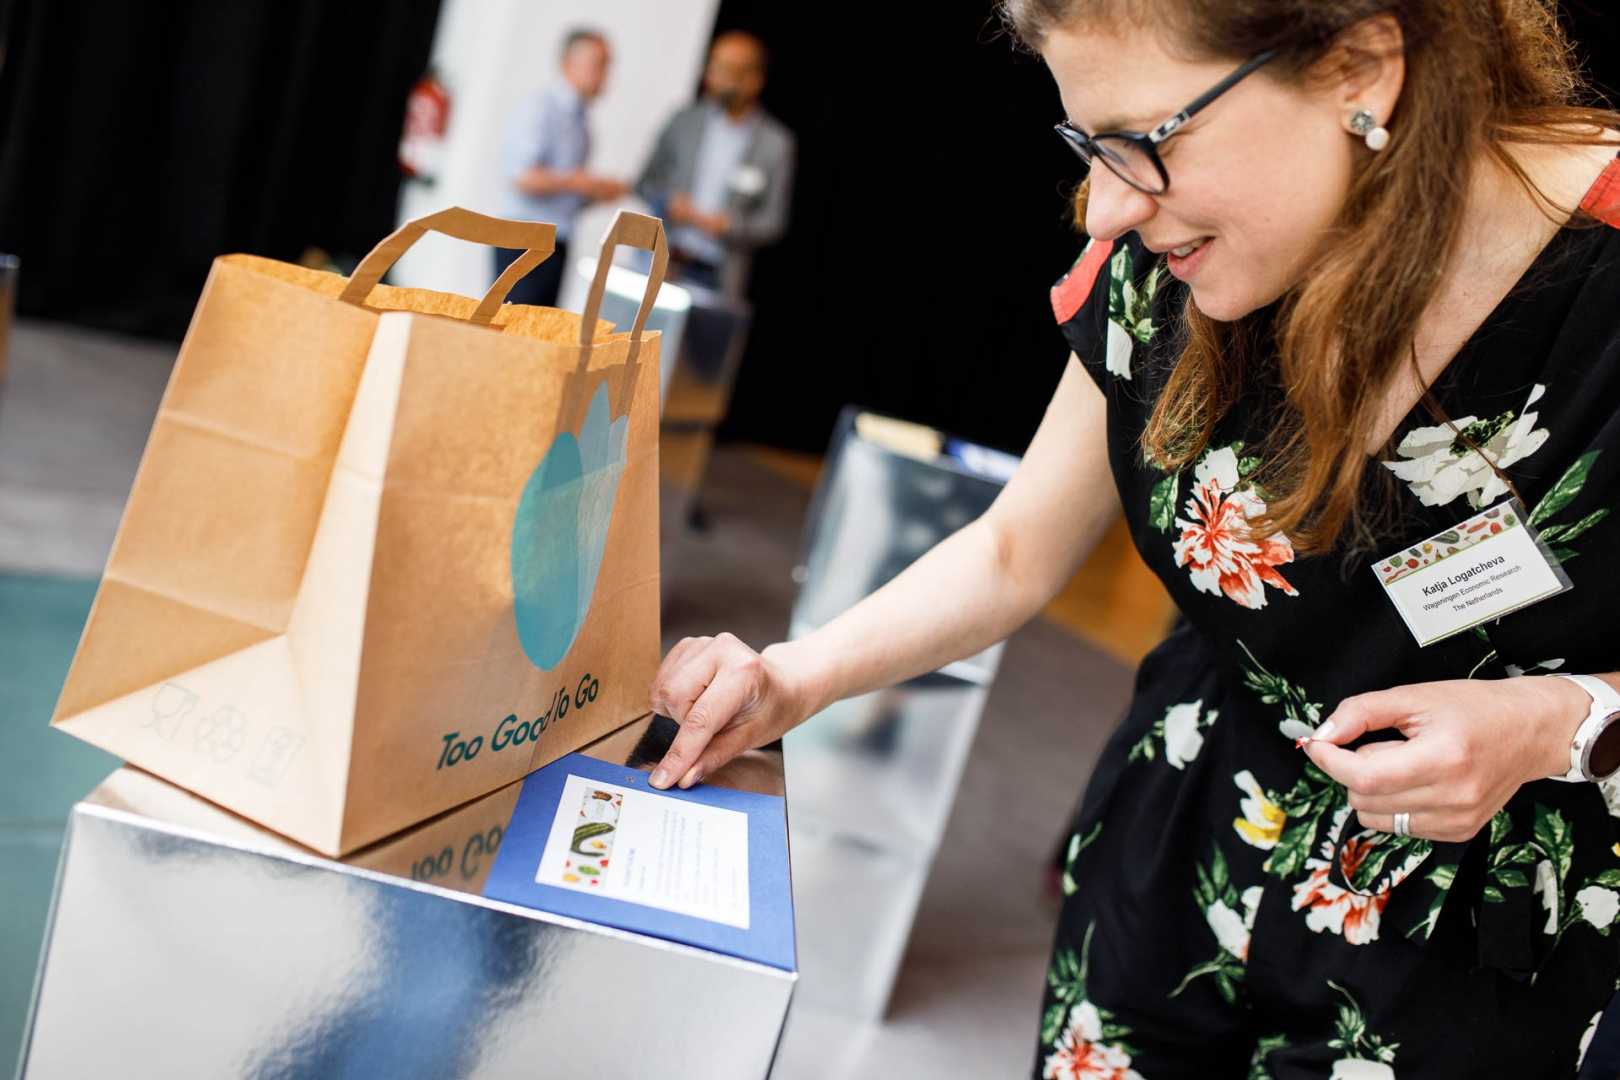 Conference participants had the opportunity to vote on their favorite 'doggy bags' by distributing stars while wandering from object to object.